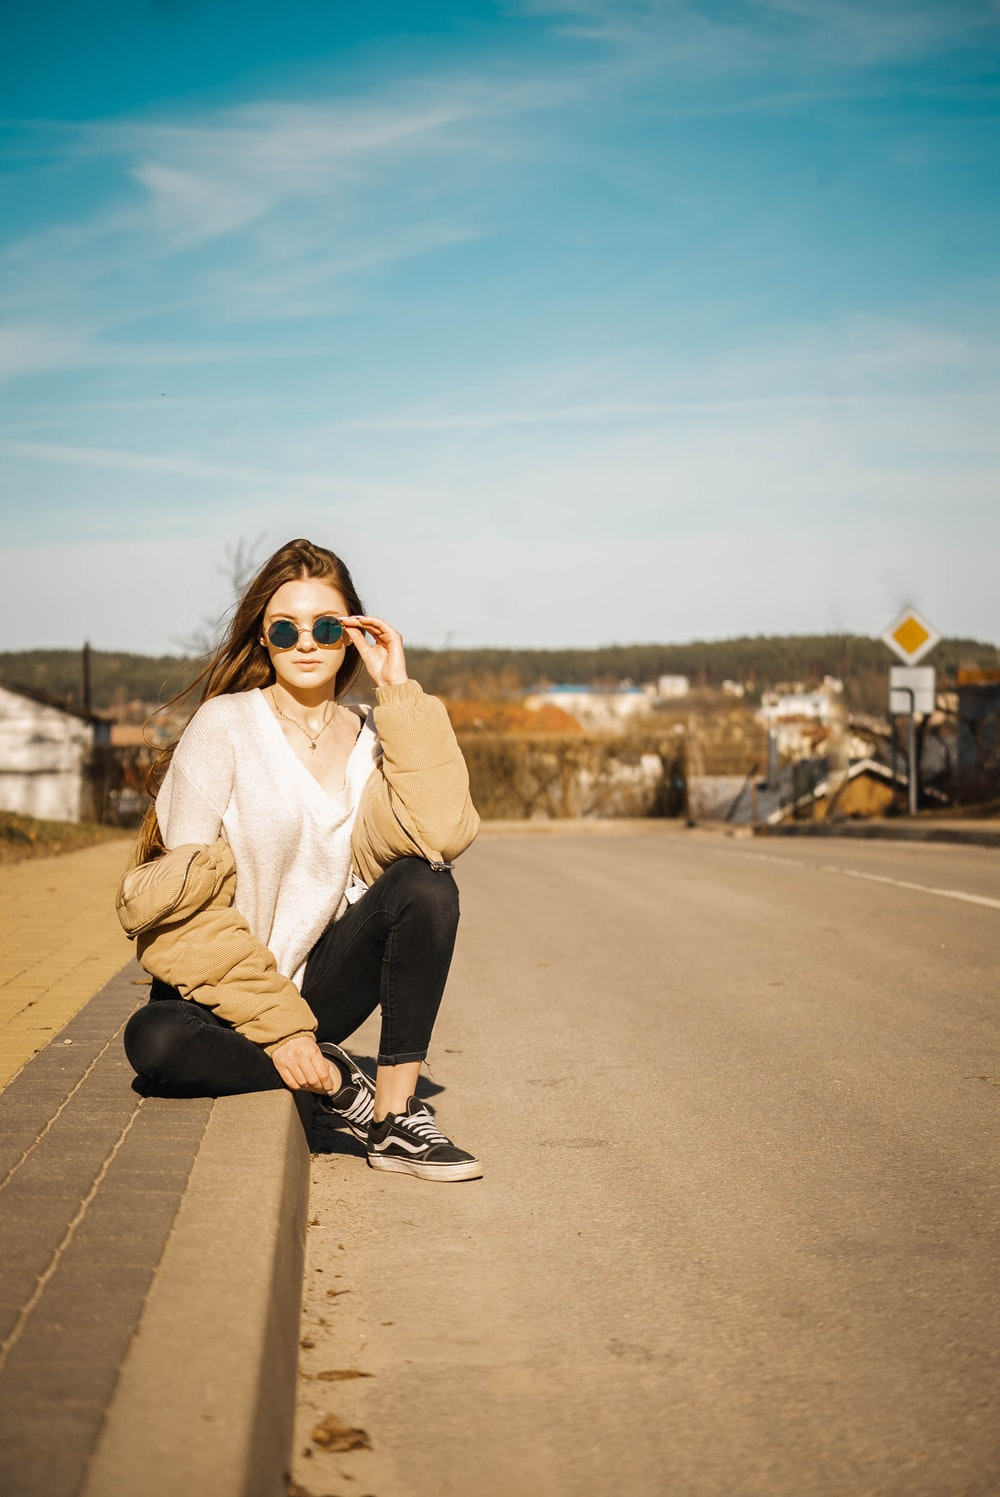 woman holding her sunglasses while sitting near road